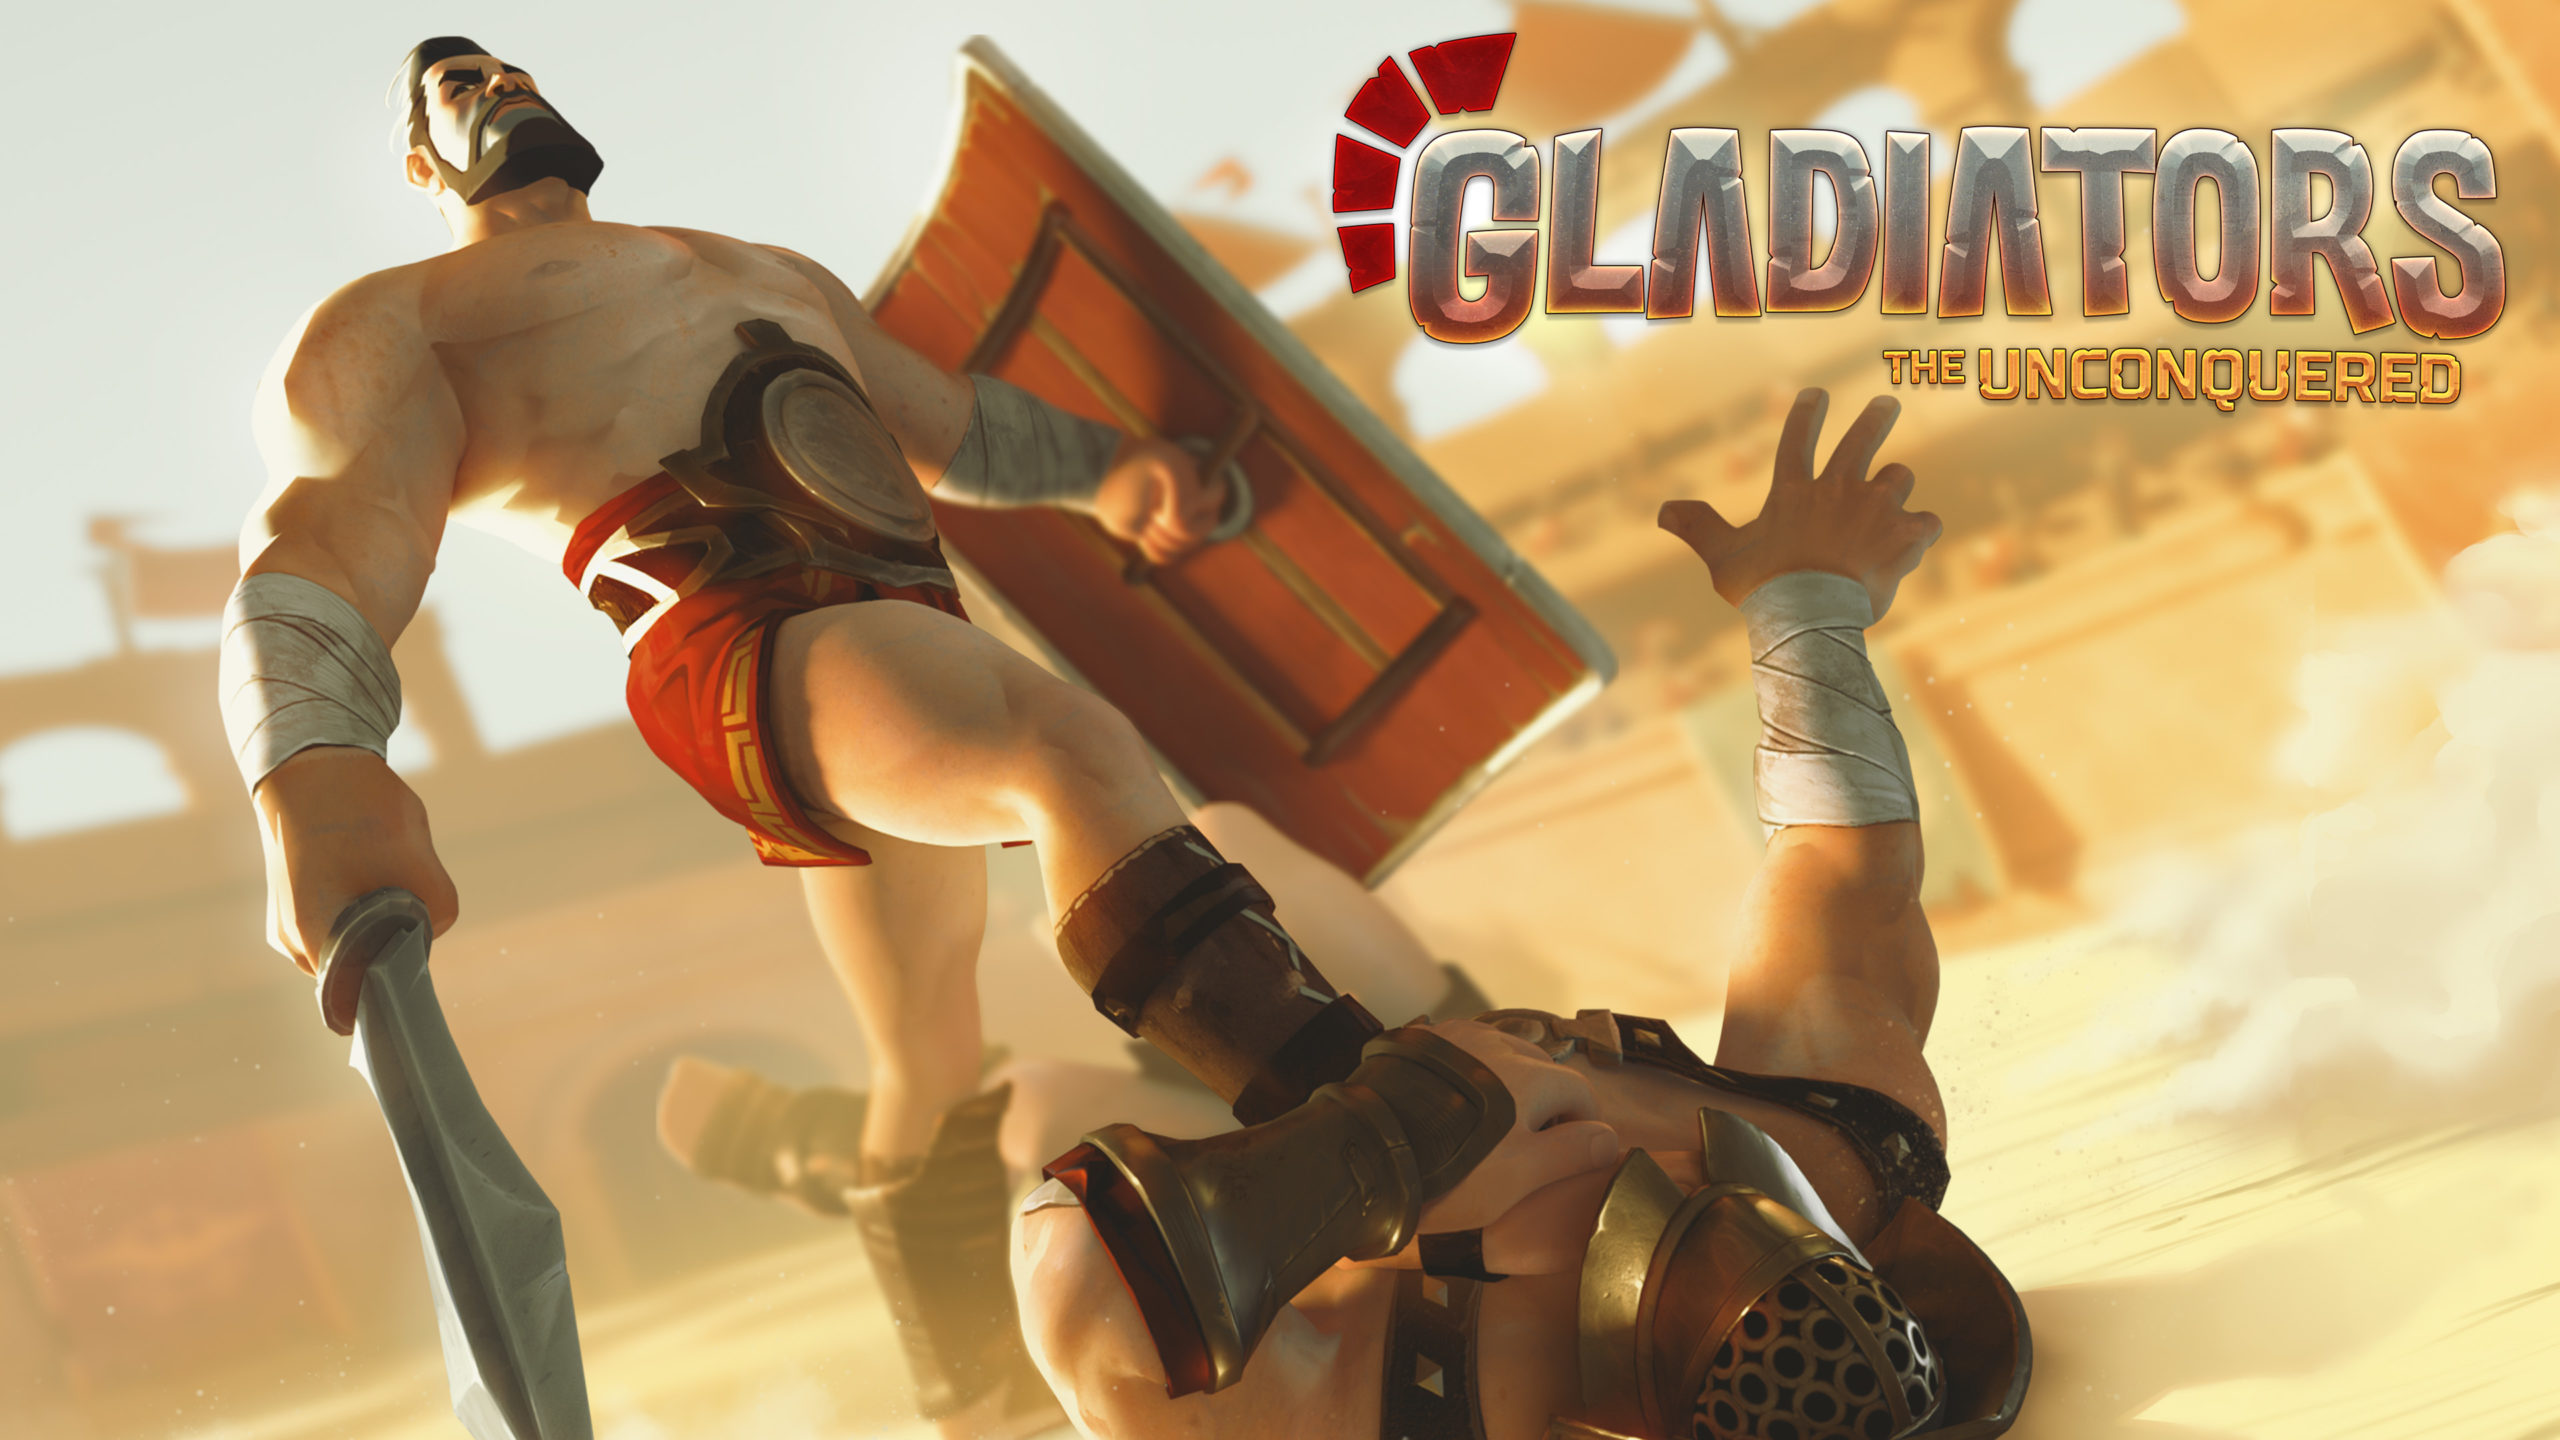 Gladiators: The Unconquered – New Game Announcement & Private Beta Details!